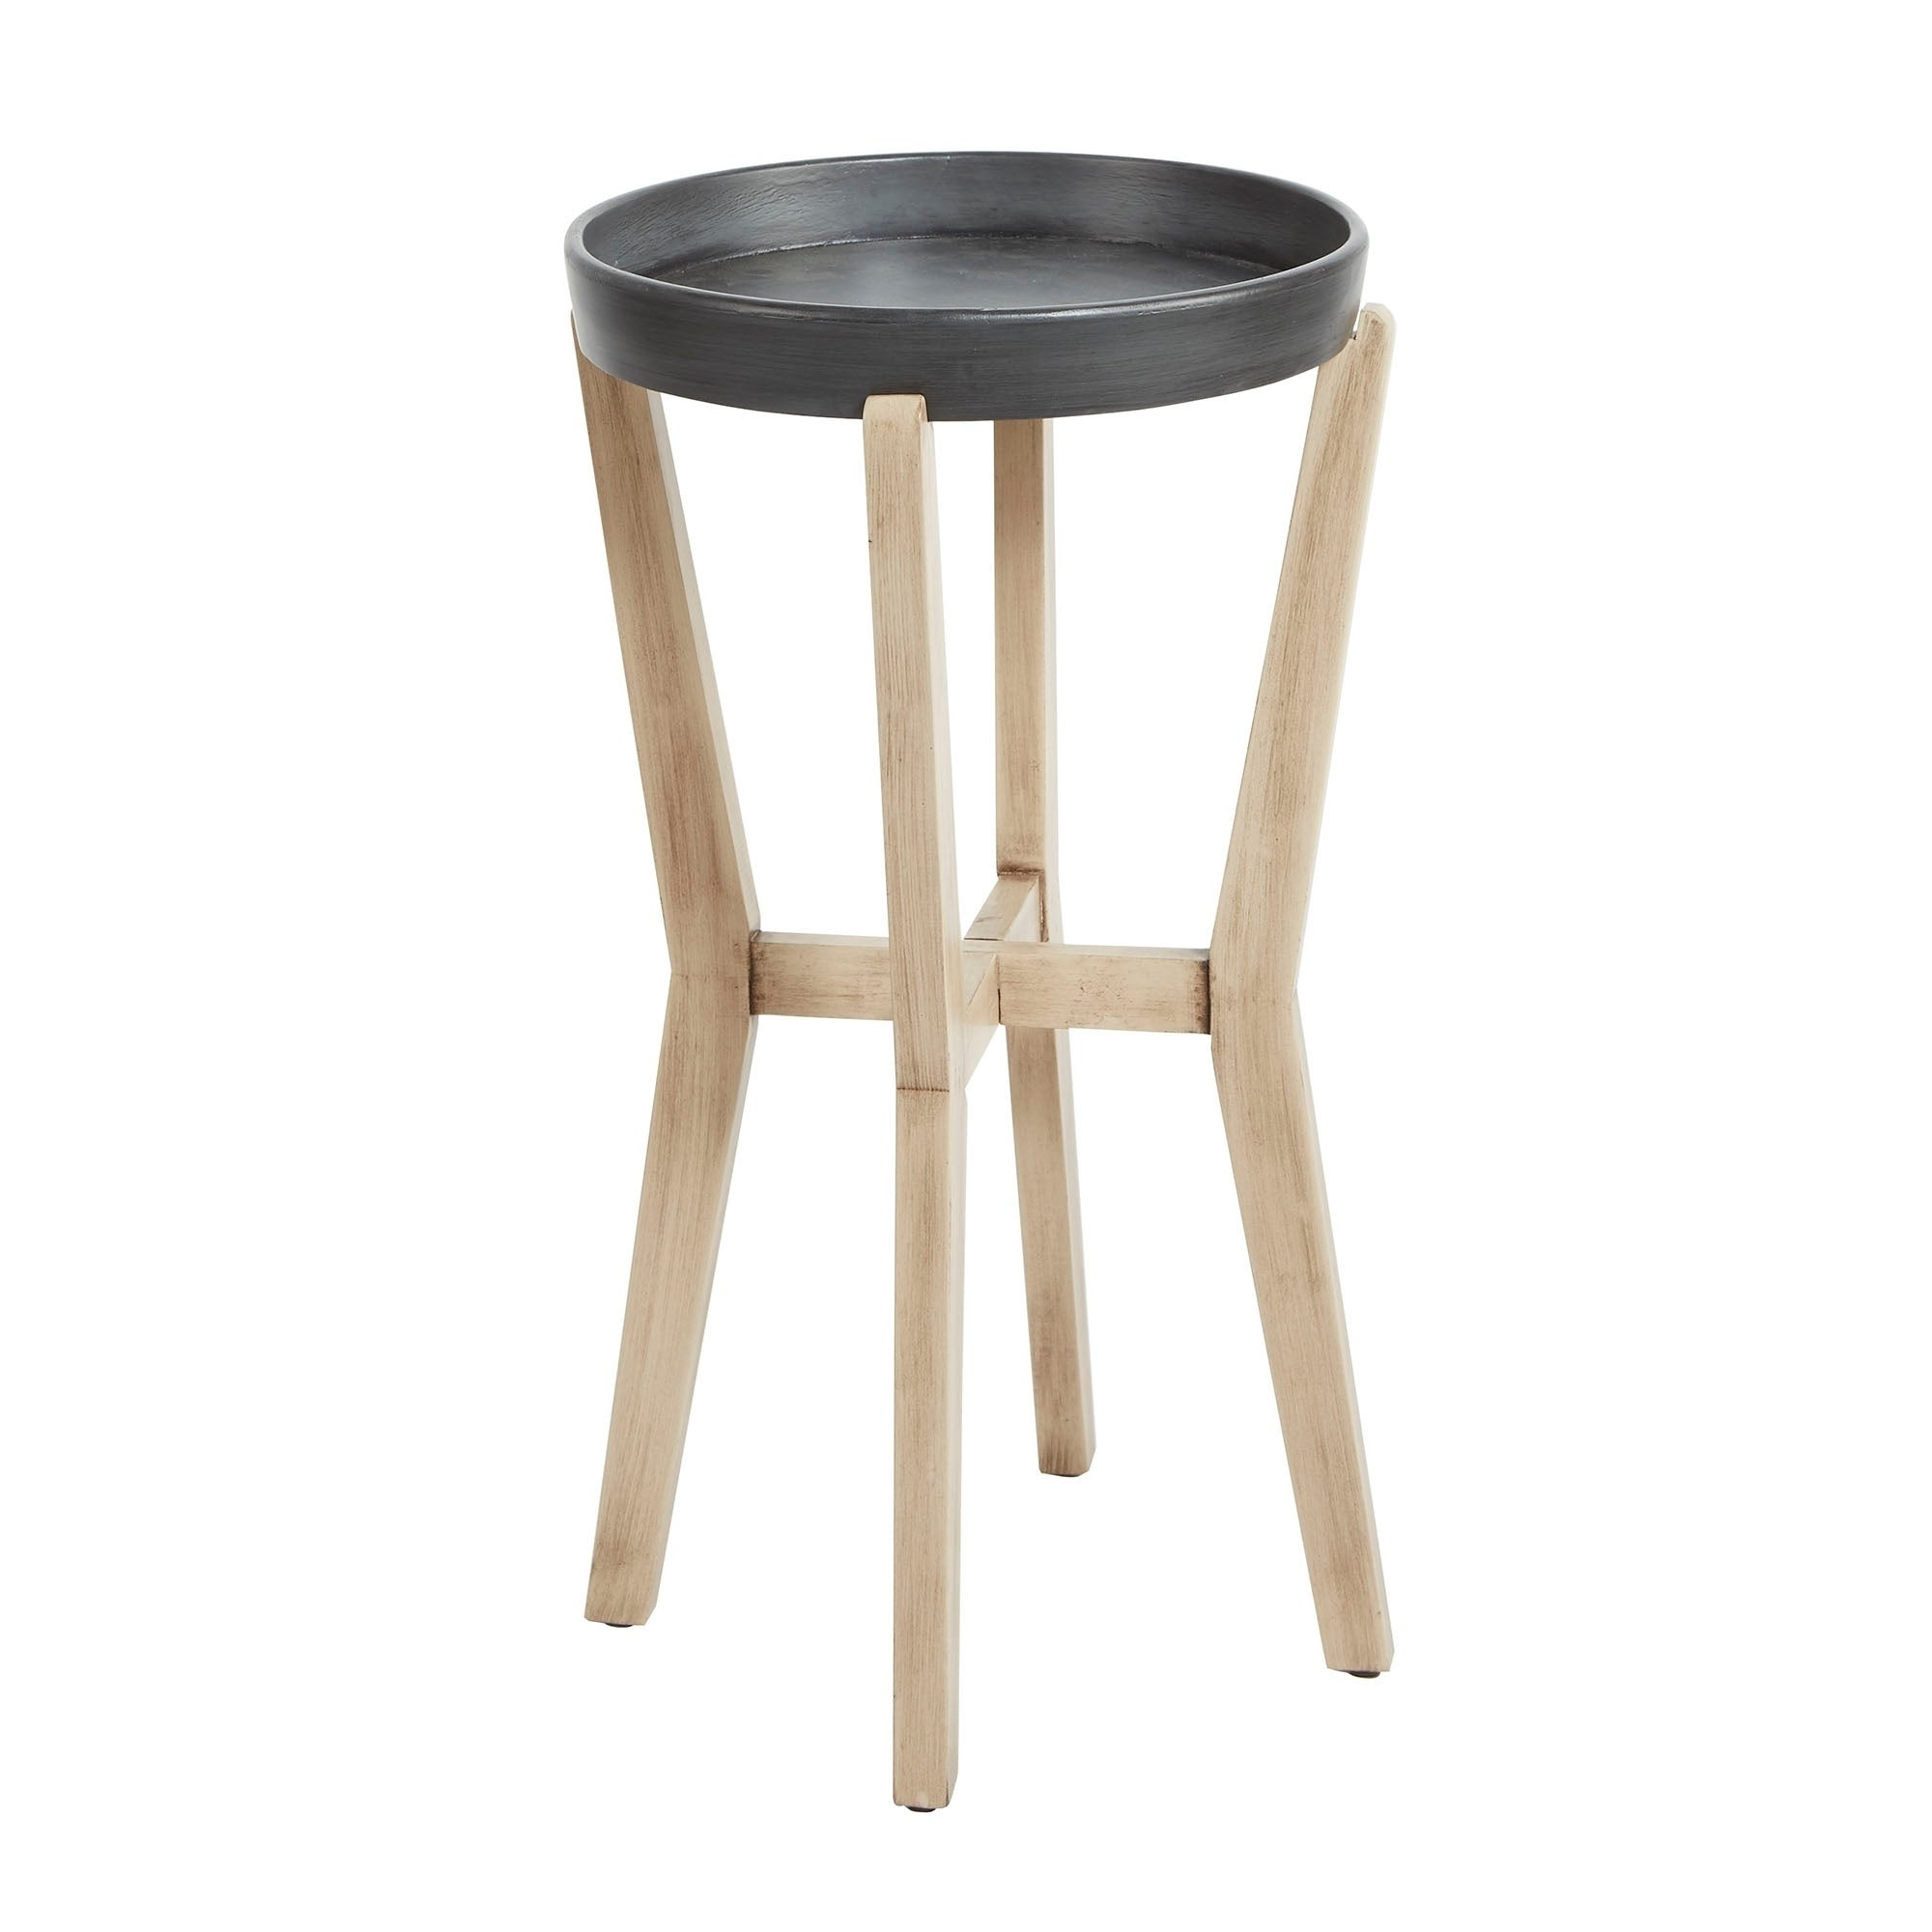 Incroyable Alex Tall Round Accent Table With Wood Frame